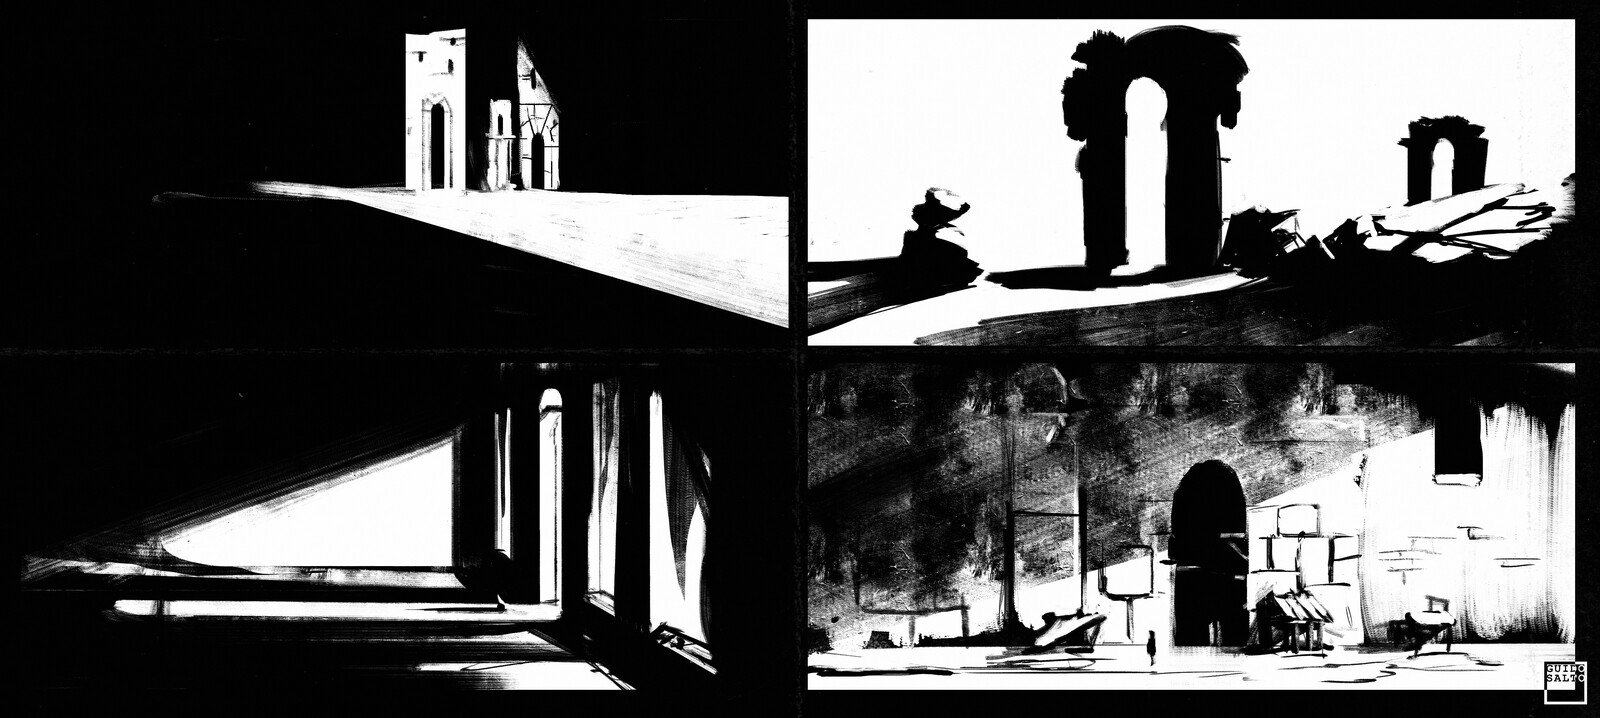 Black and White Environment Sketch Timelapse